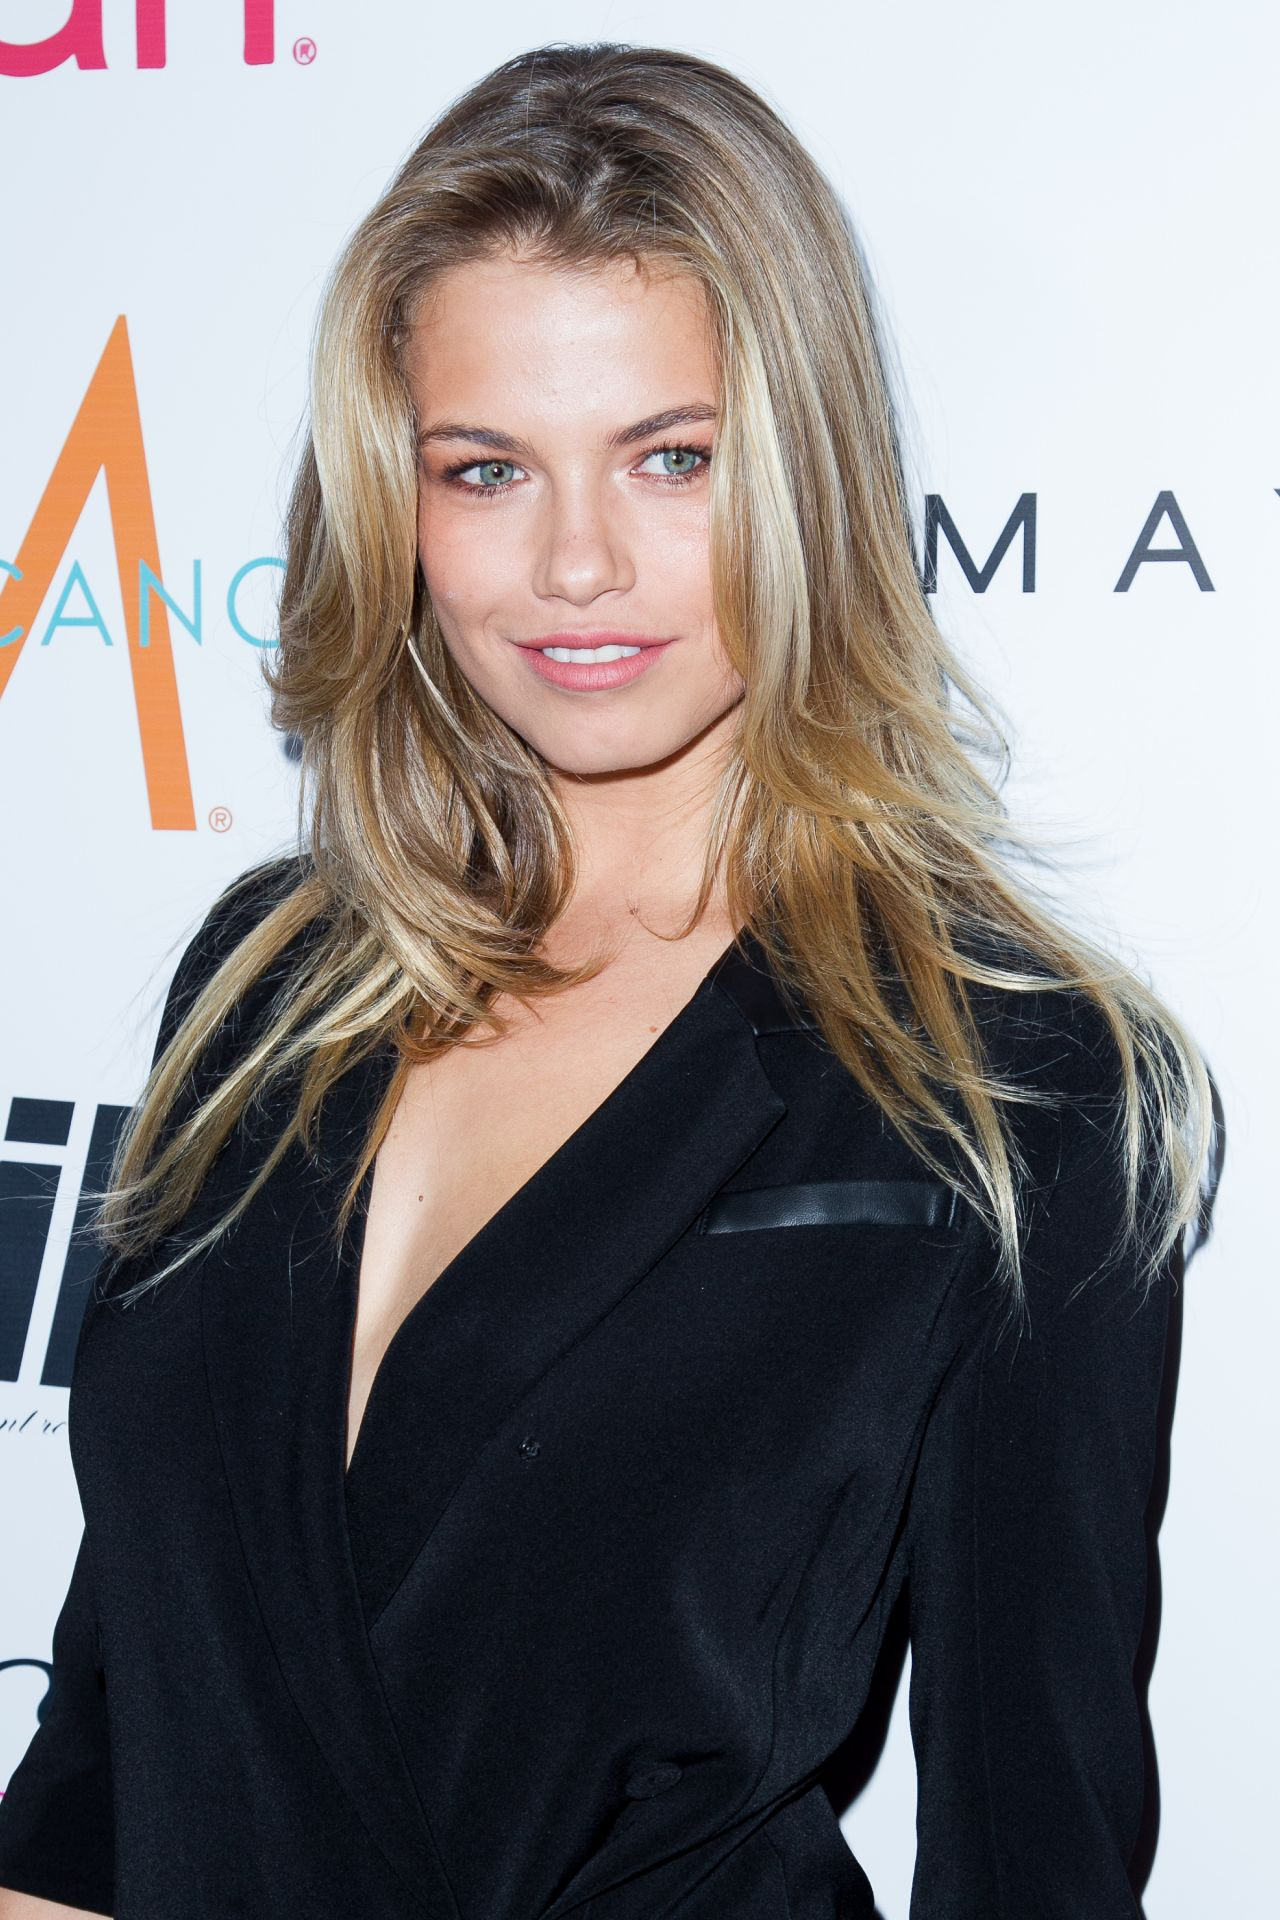 Hailey Clauson Net Worth